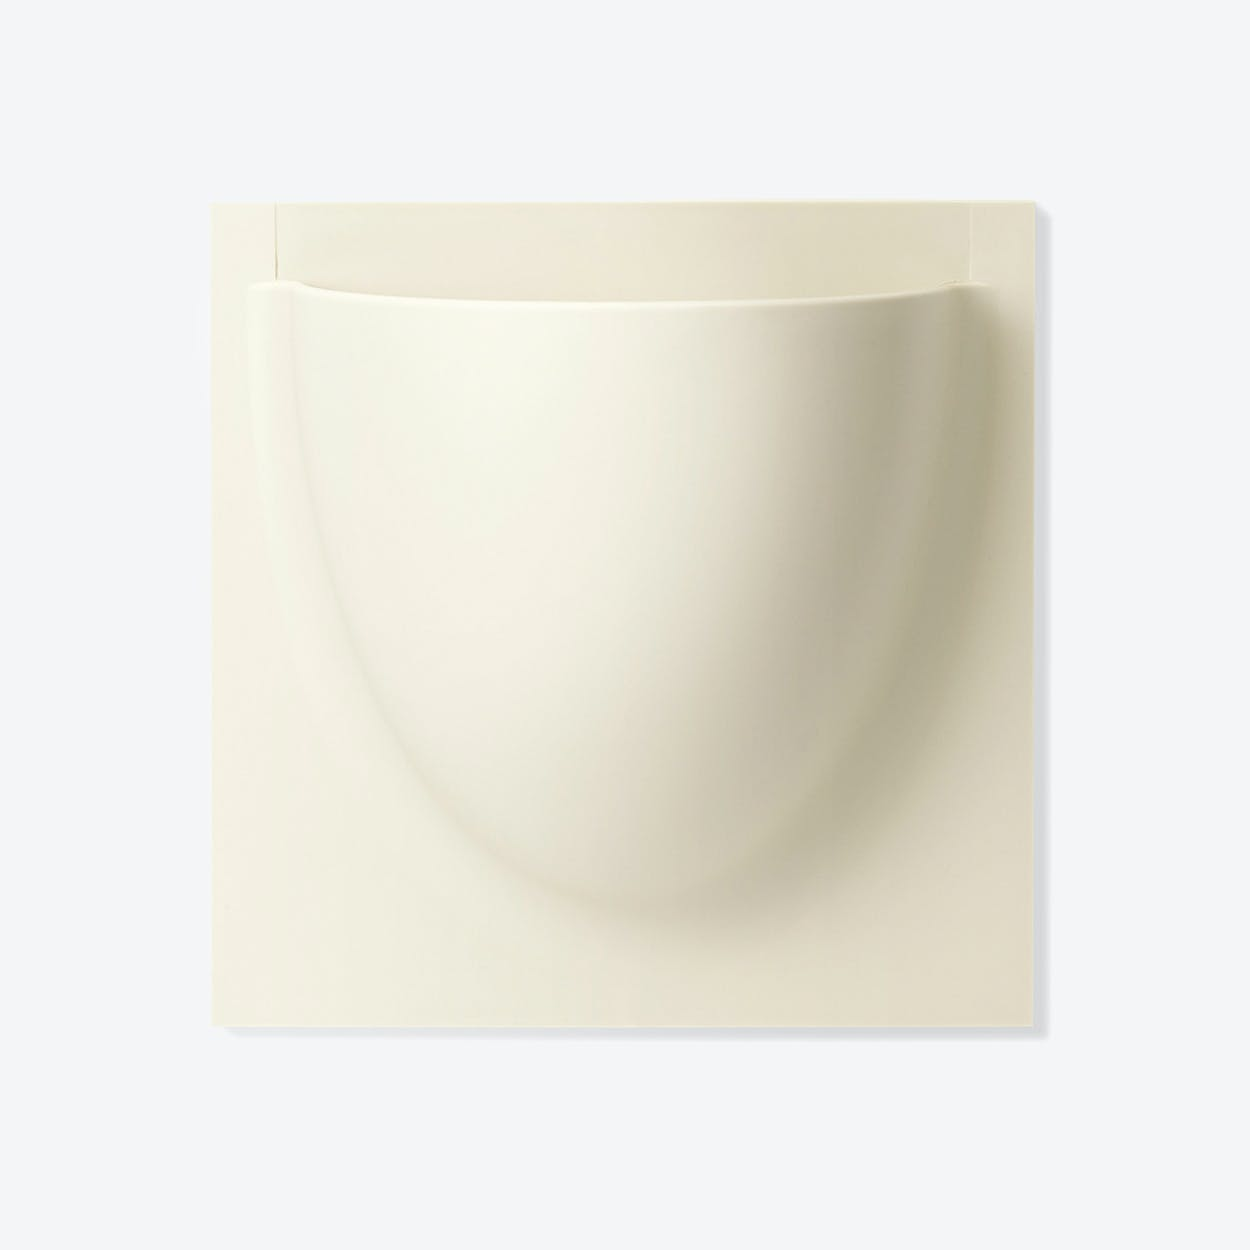 Wall Planter / Jar in Oyster White